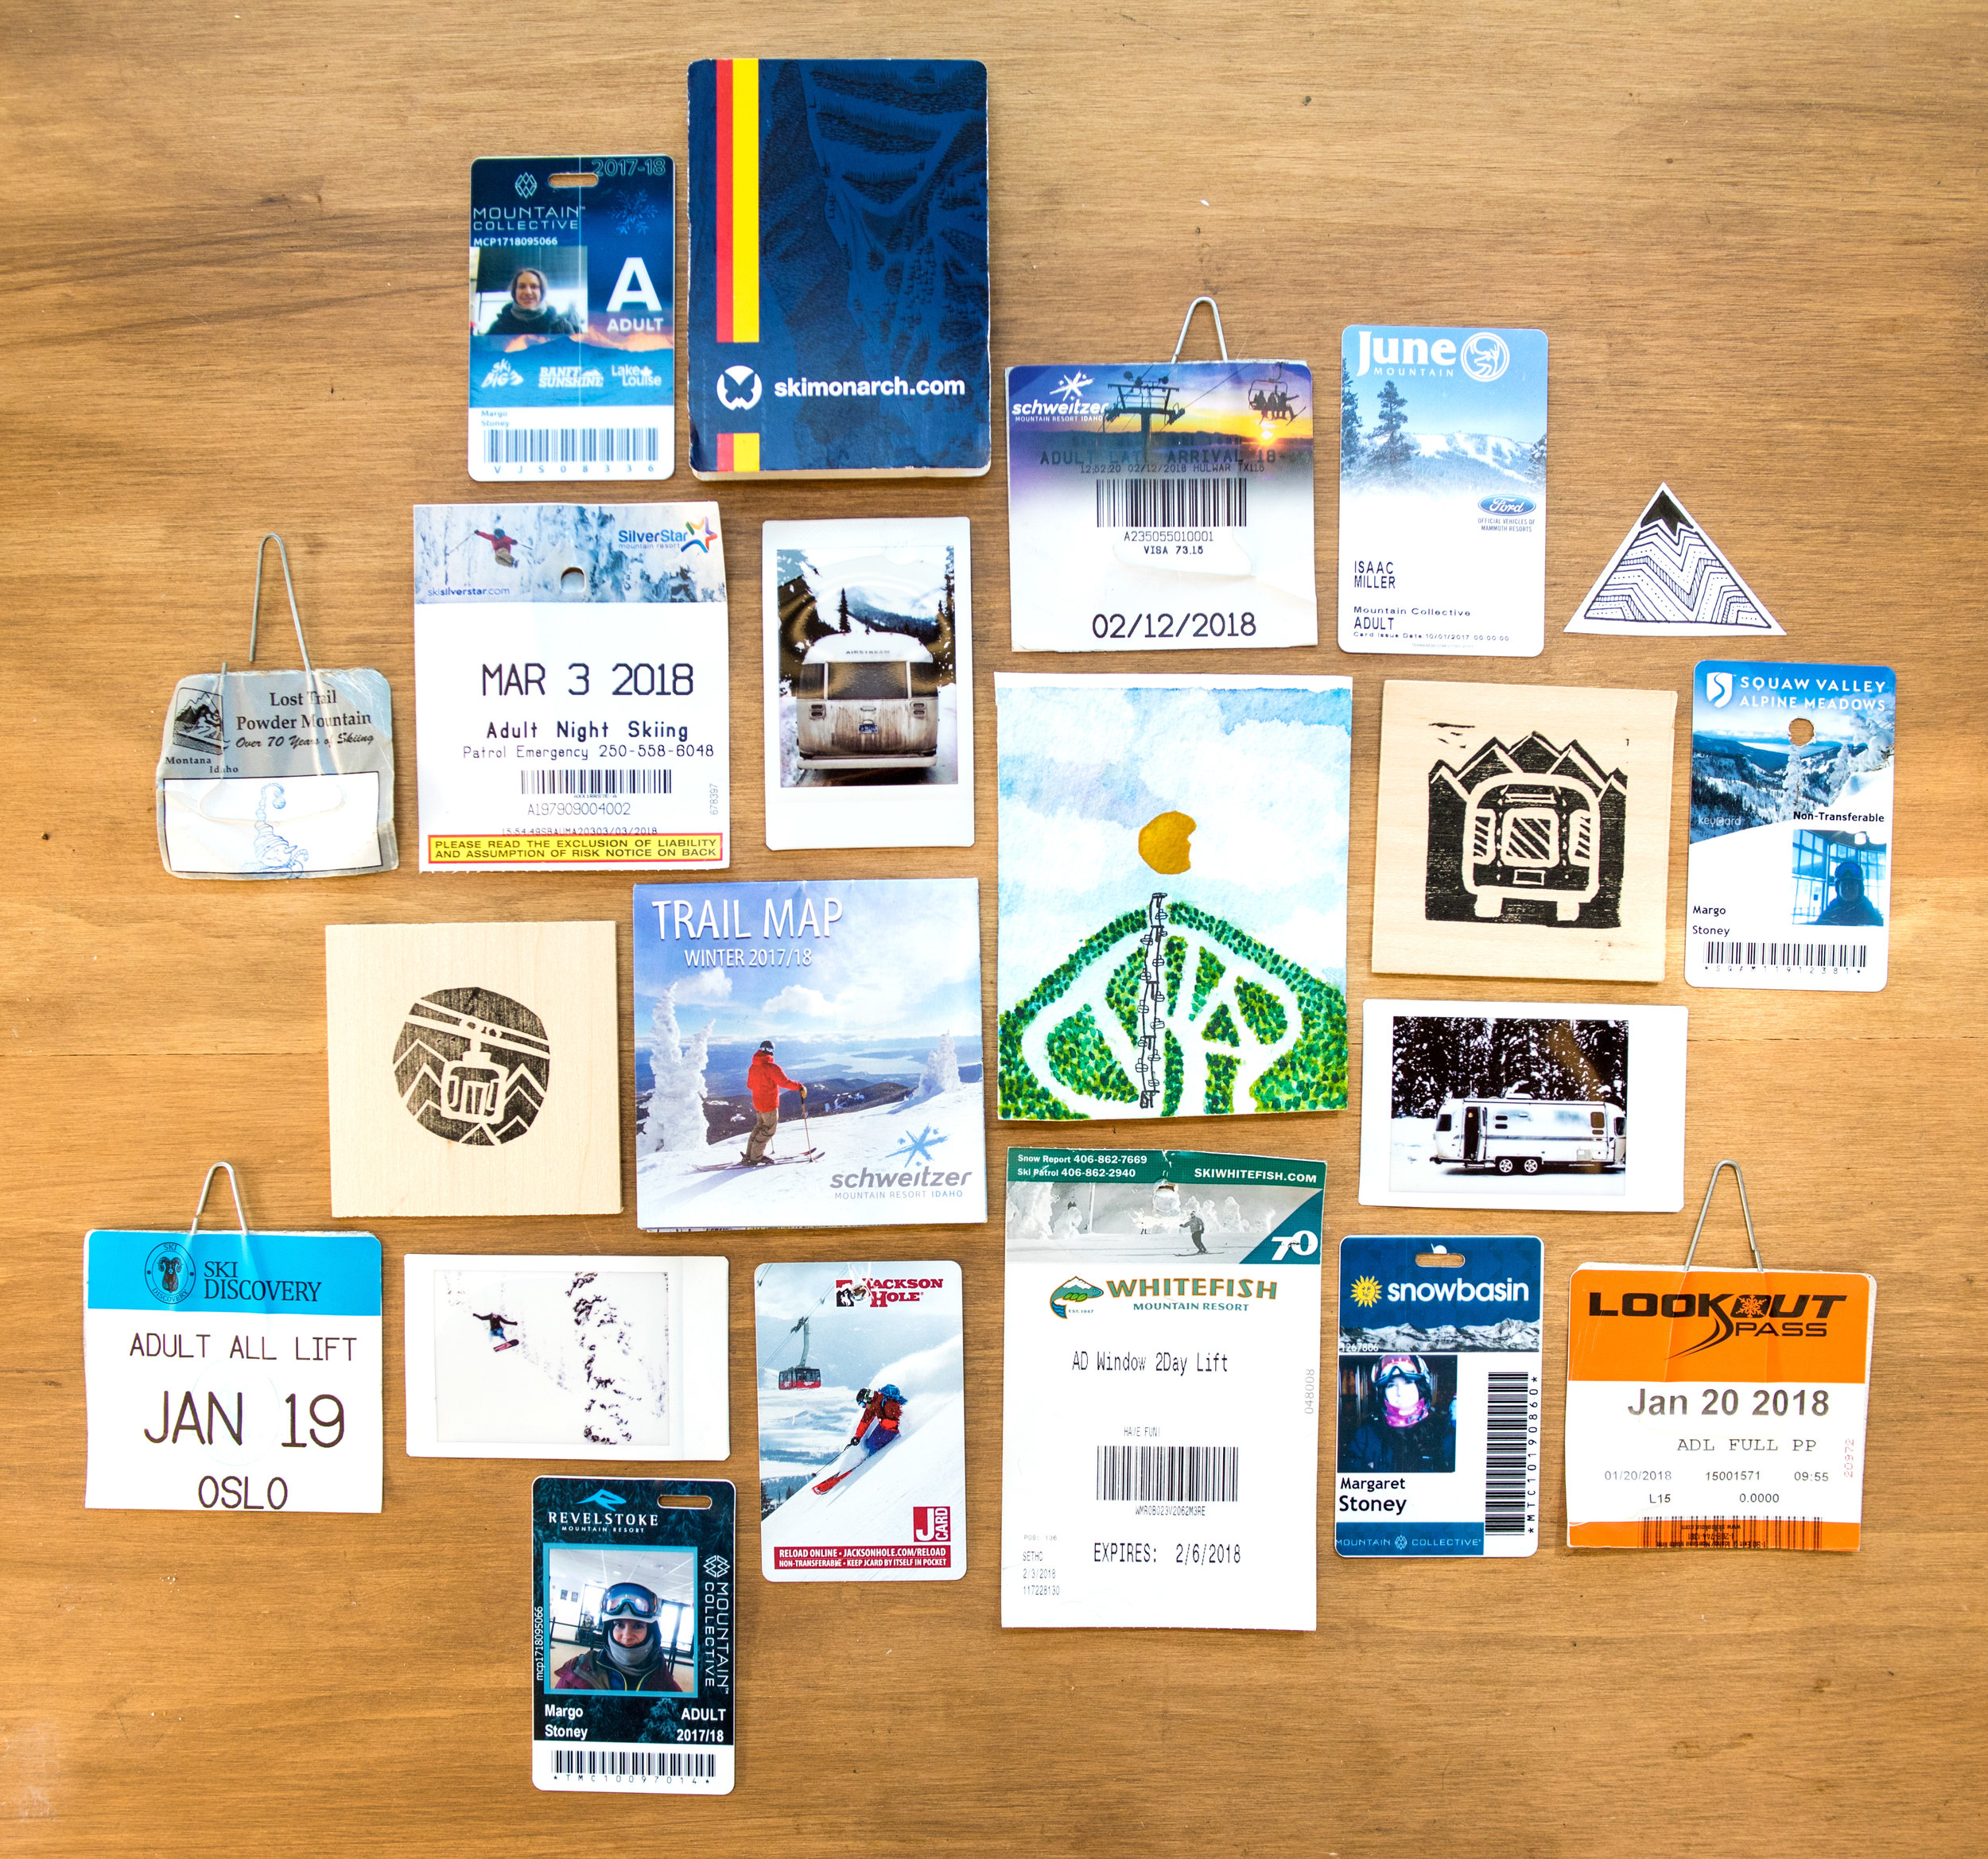 A scrapbook collection of lift tickets, ski passes, trail maps, photos and artwork from along the way.